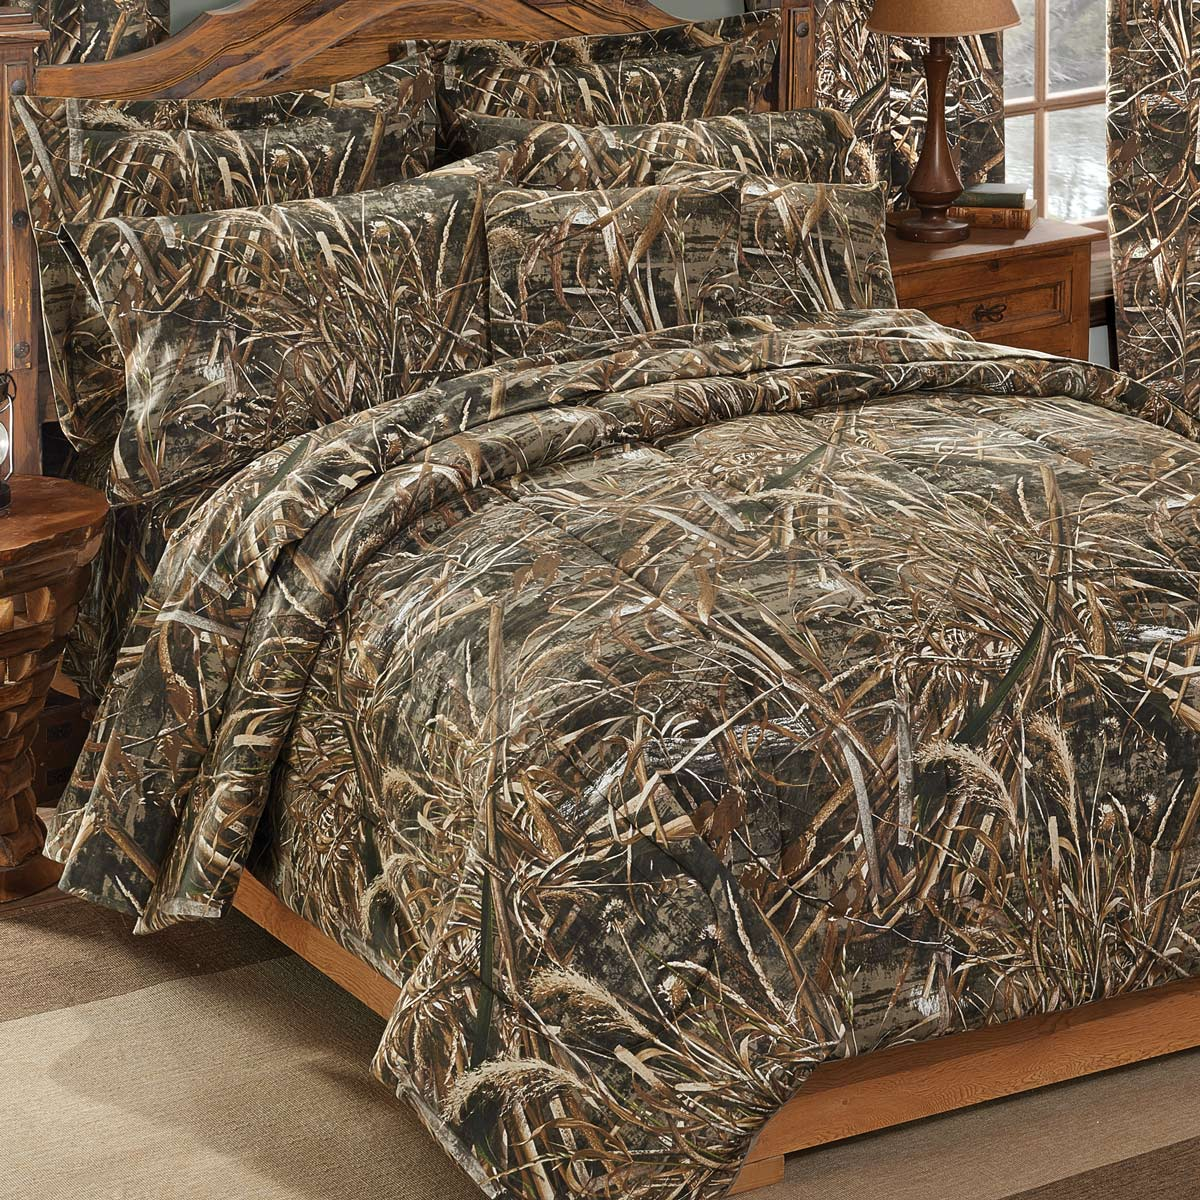 Max 5 Realtree Comforter Set - Full